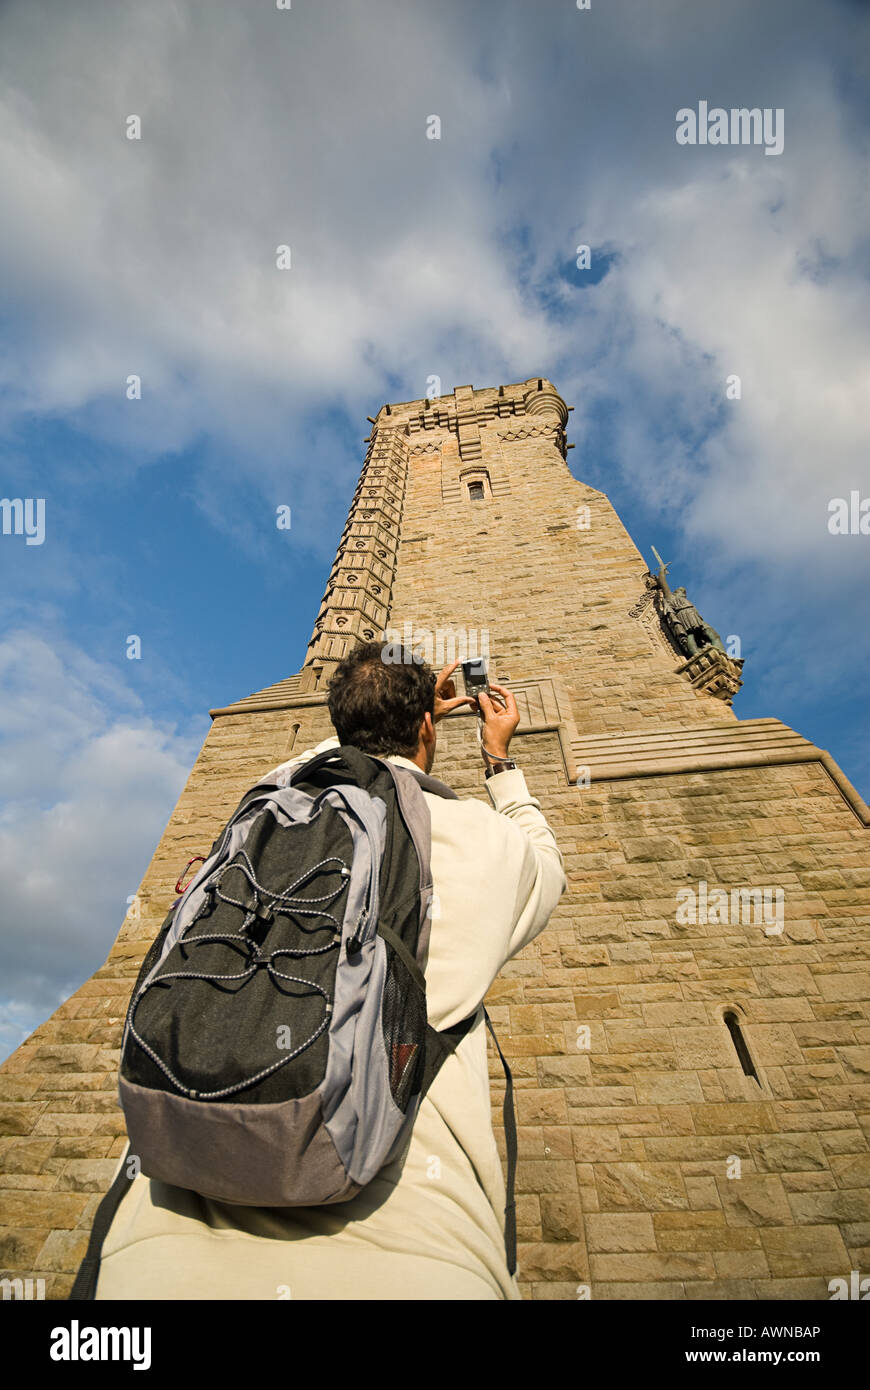 Man photographing wallace monument - Stock Image